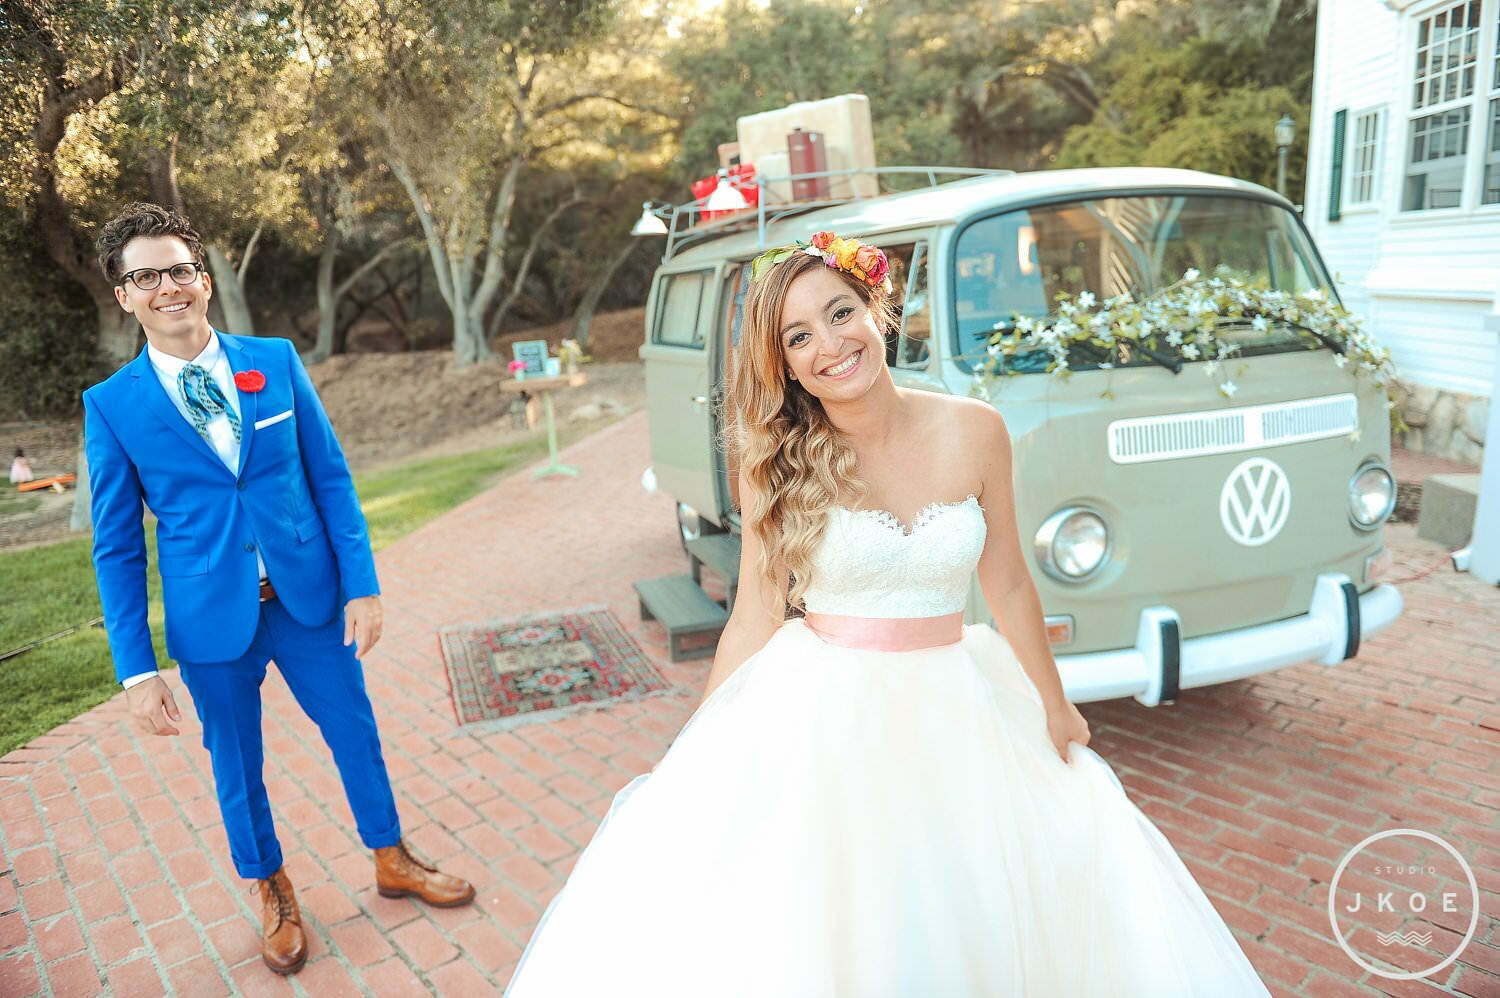 Other Wedding Photo Booth Rentals Like Flashtag Social Media